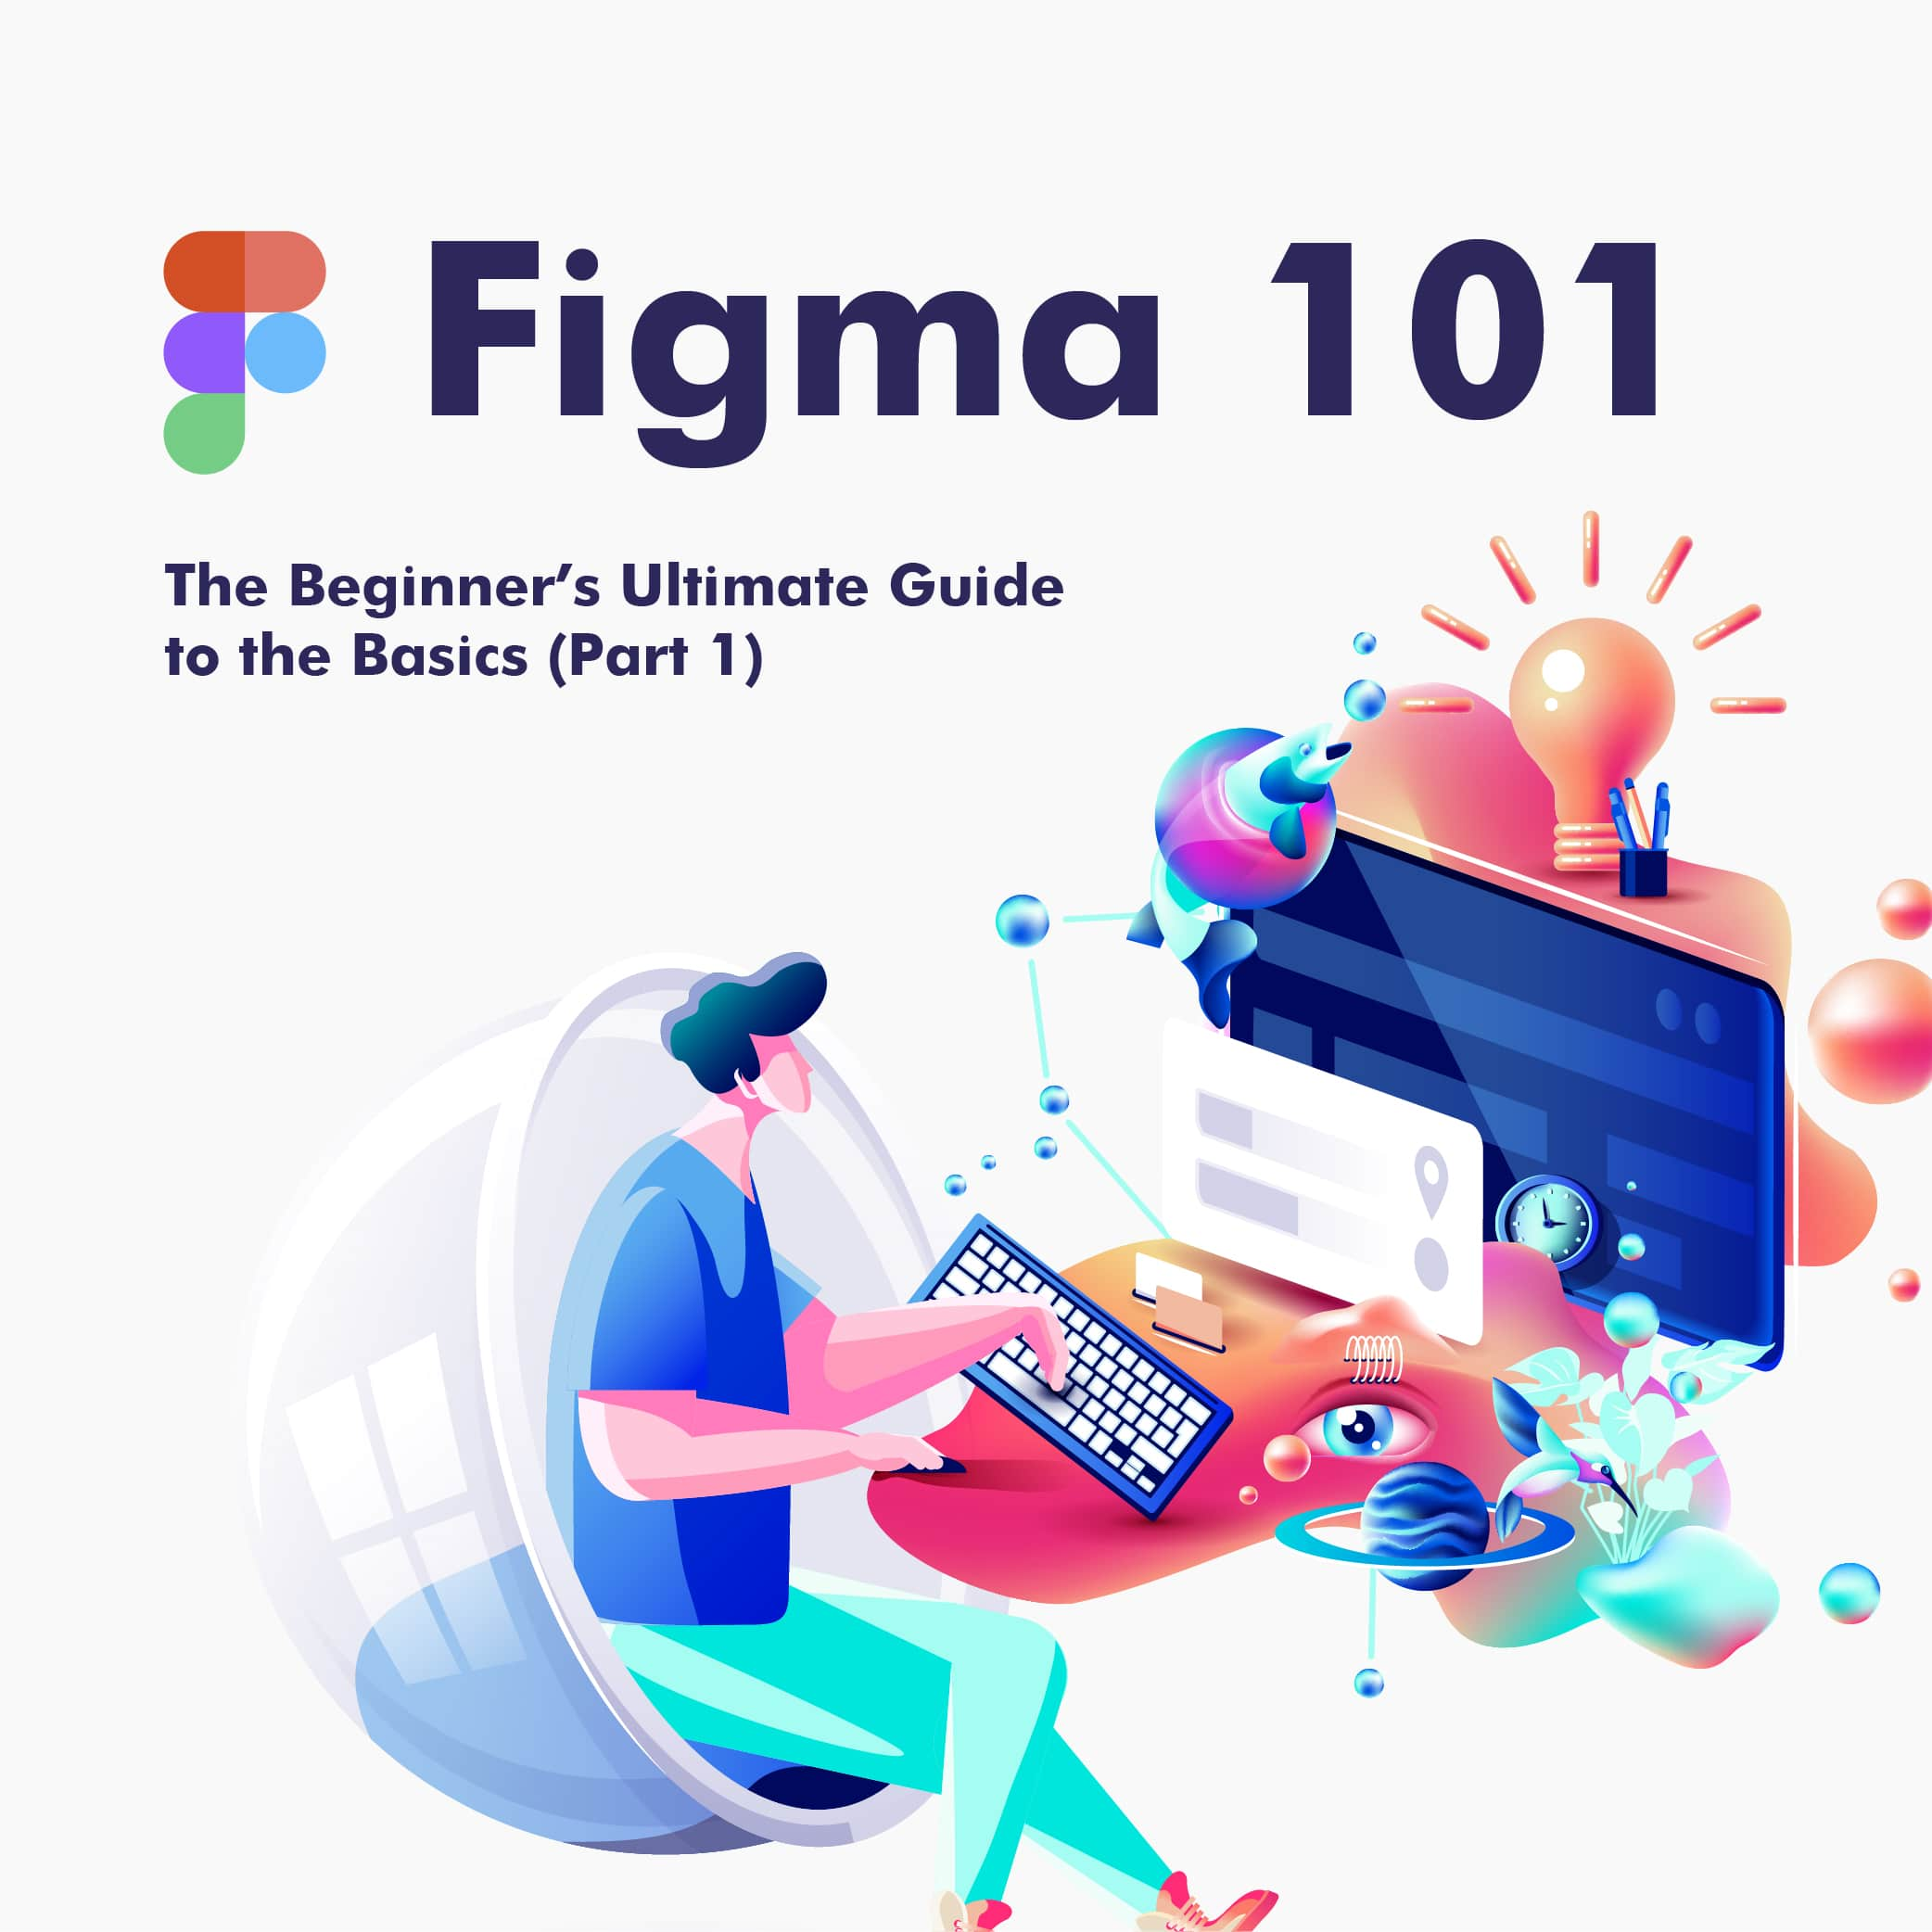 Figma 101 – The Beginner's Ultimate Guide to the Basics (Part 1)